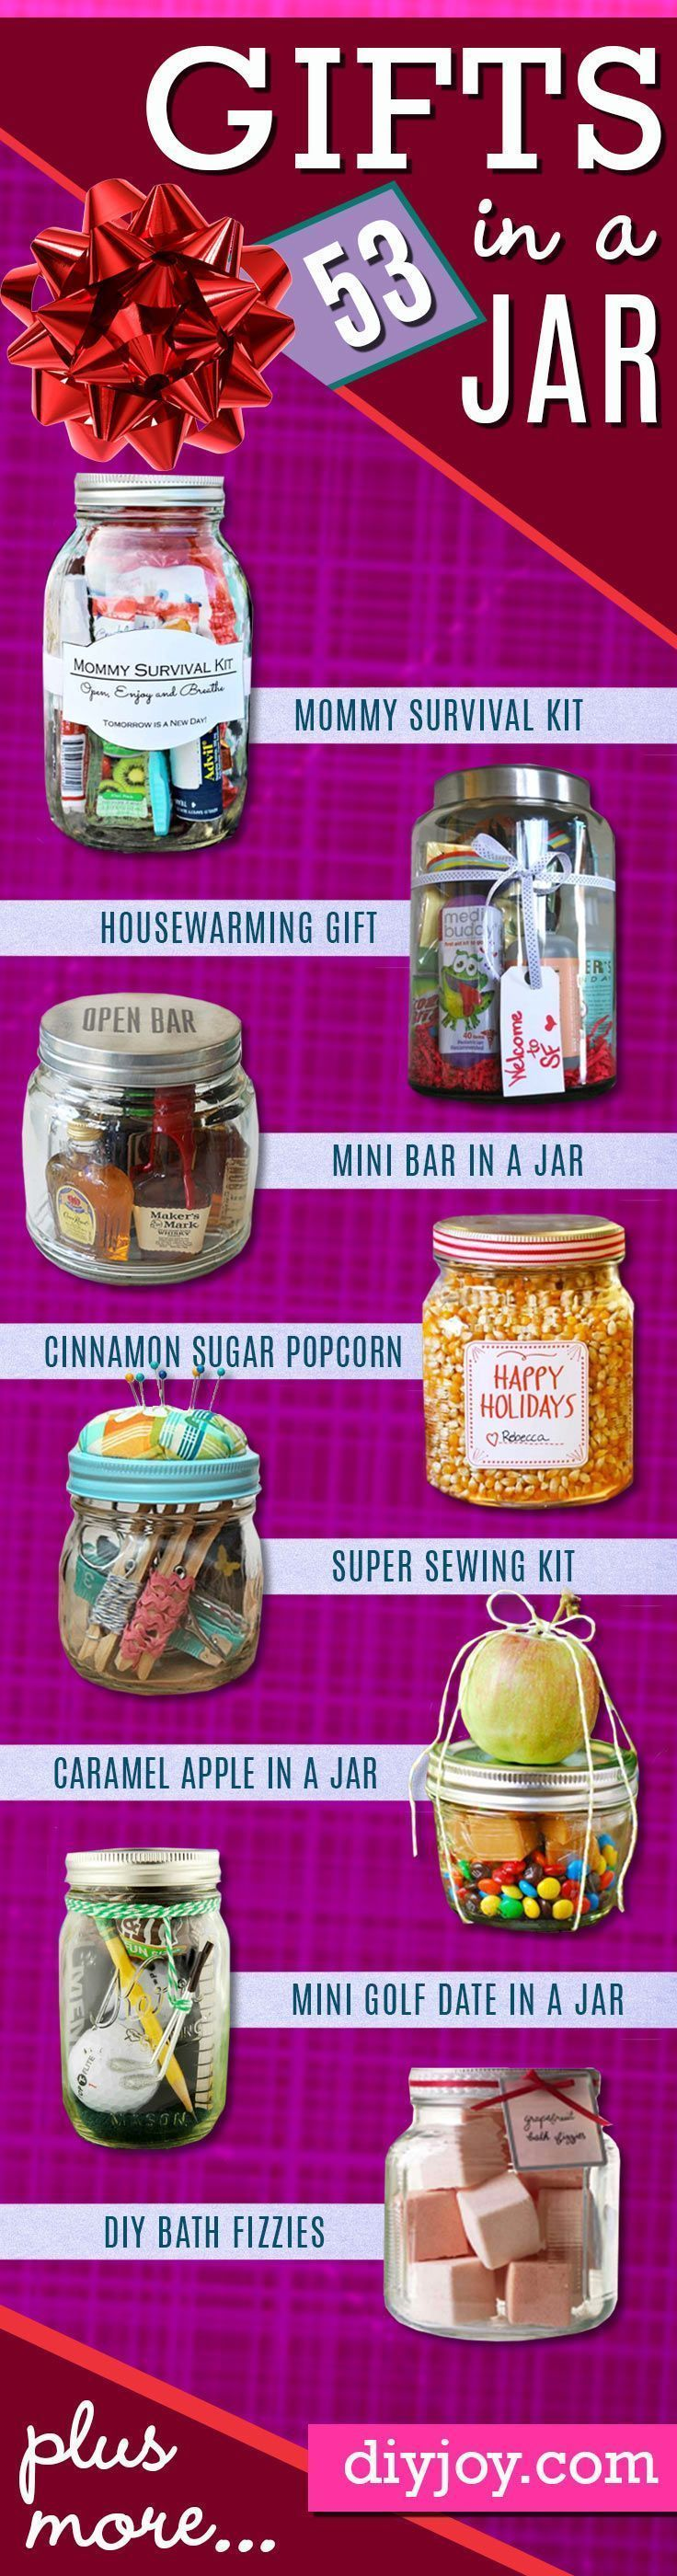 Best 25 diy gifts for mom ideas on pinterest gifts for mom diy 53 coolest diy mason jar gifts other fun ideas in a jar negle Image collections